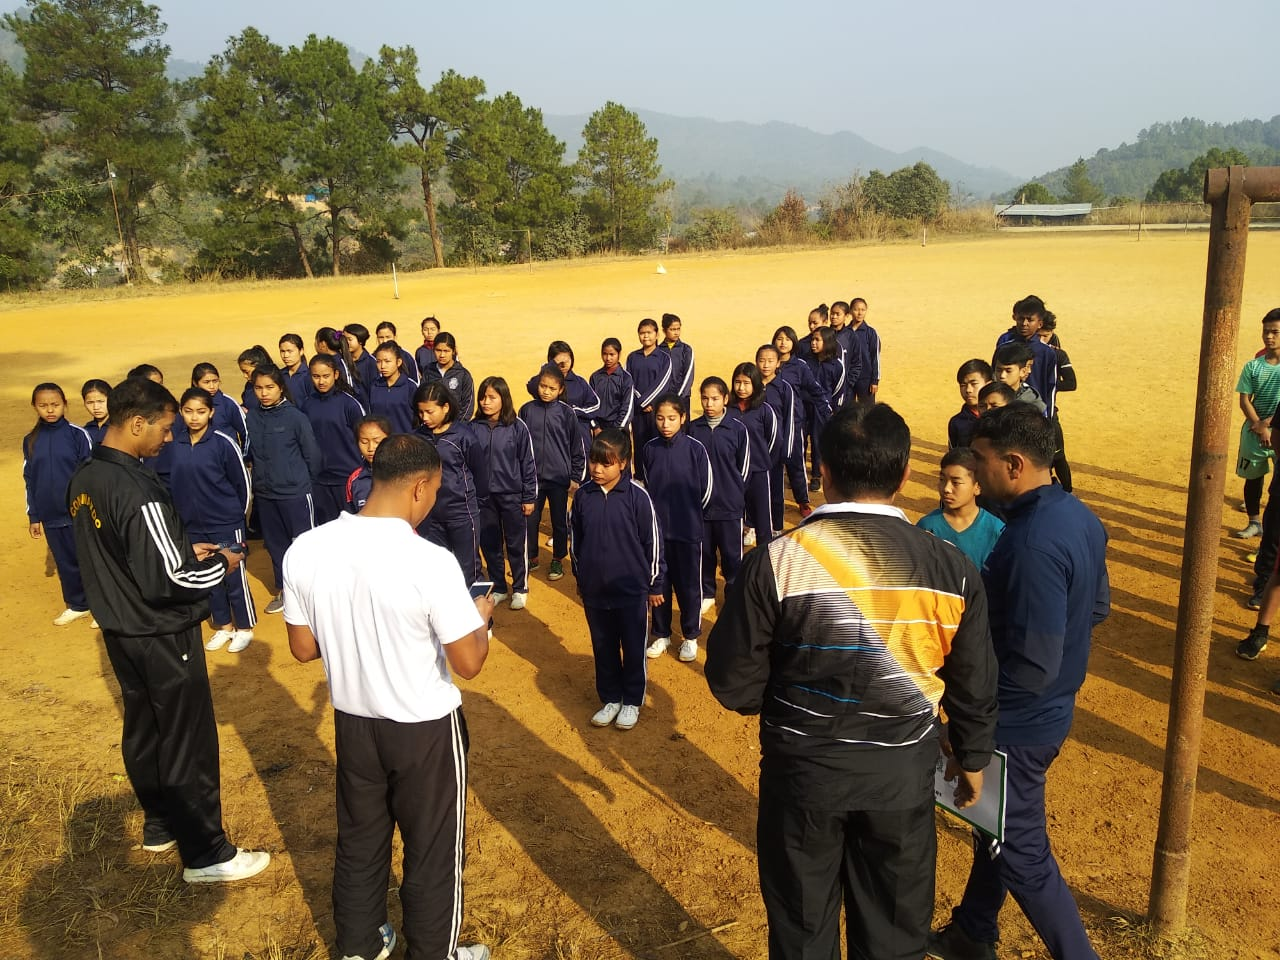 AR conducts scouting to talent